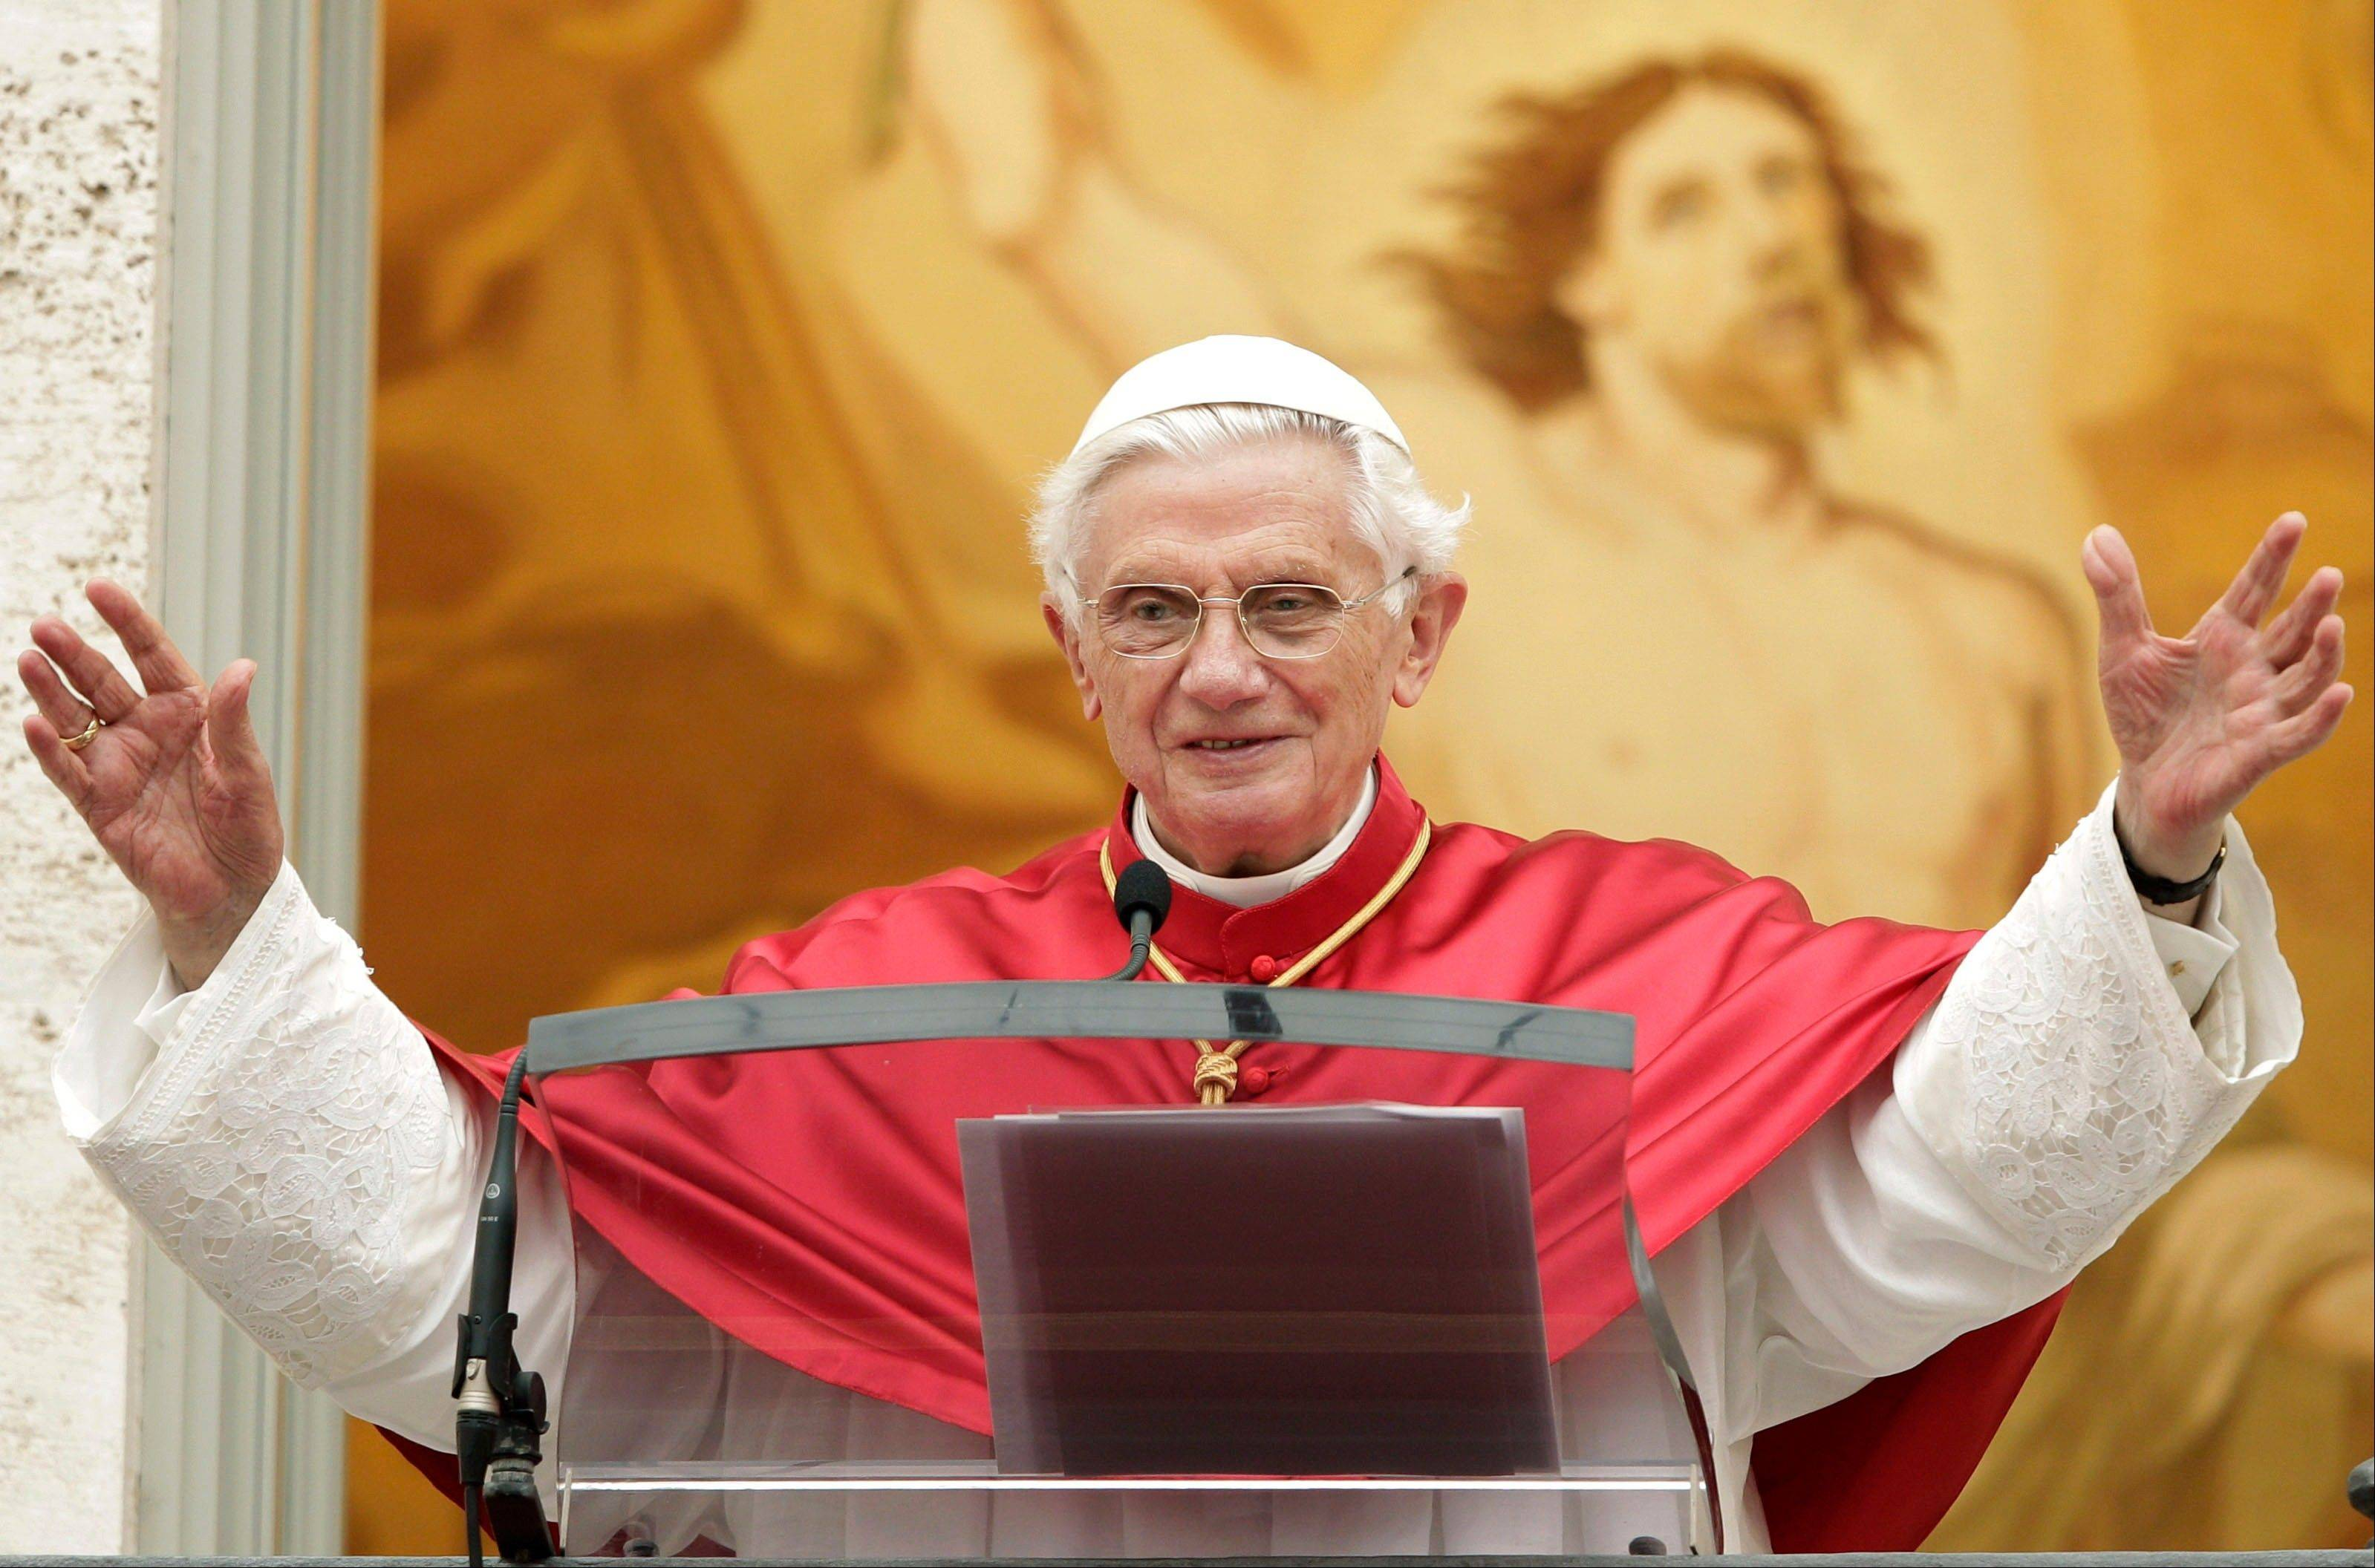 Pope Benedict XVI waves to faithful during the Angelus prayer at his summer residence of Castel Gandolfo, in the outskirts of Rome, Sunday, July 15, 2012.